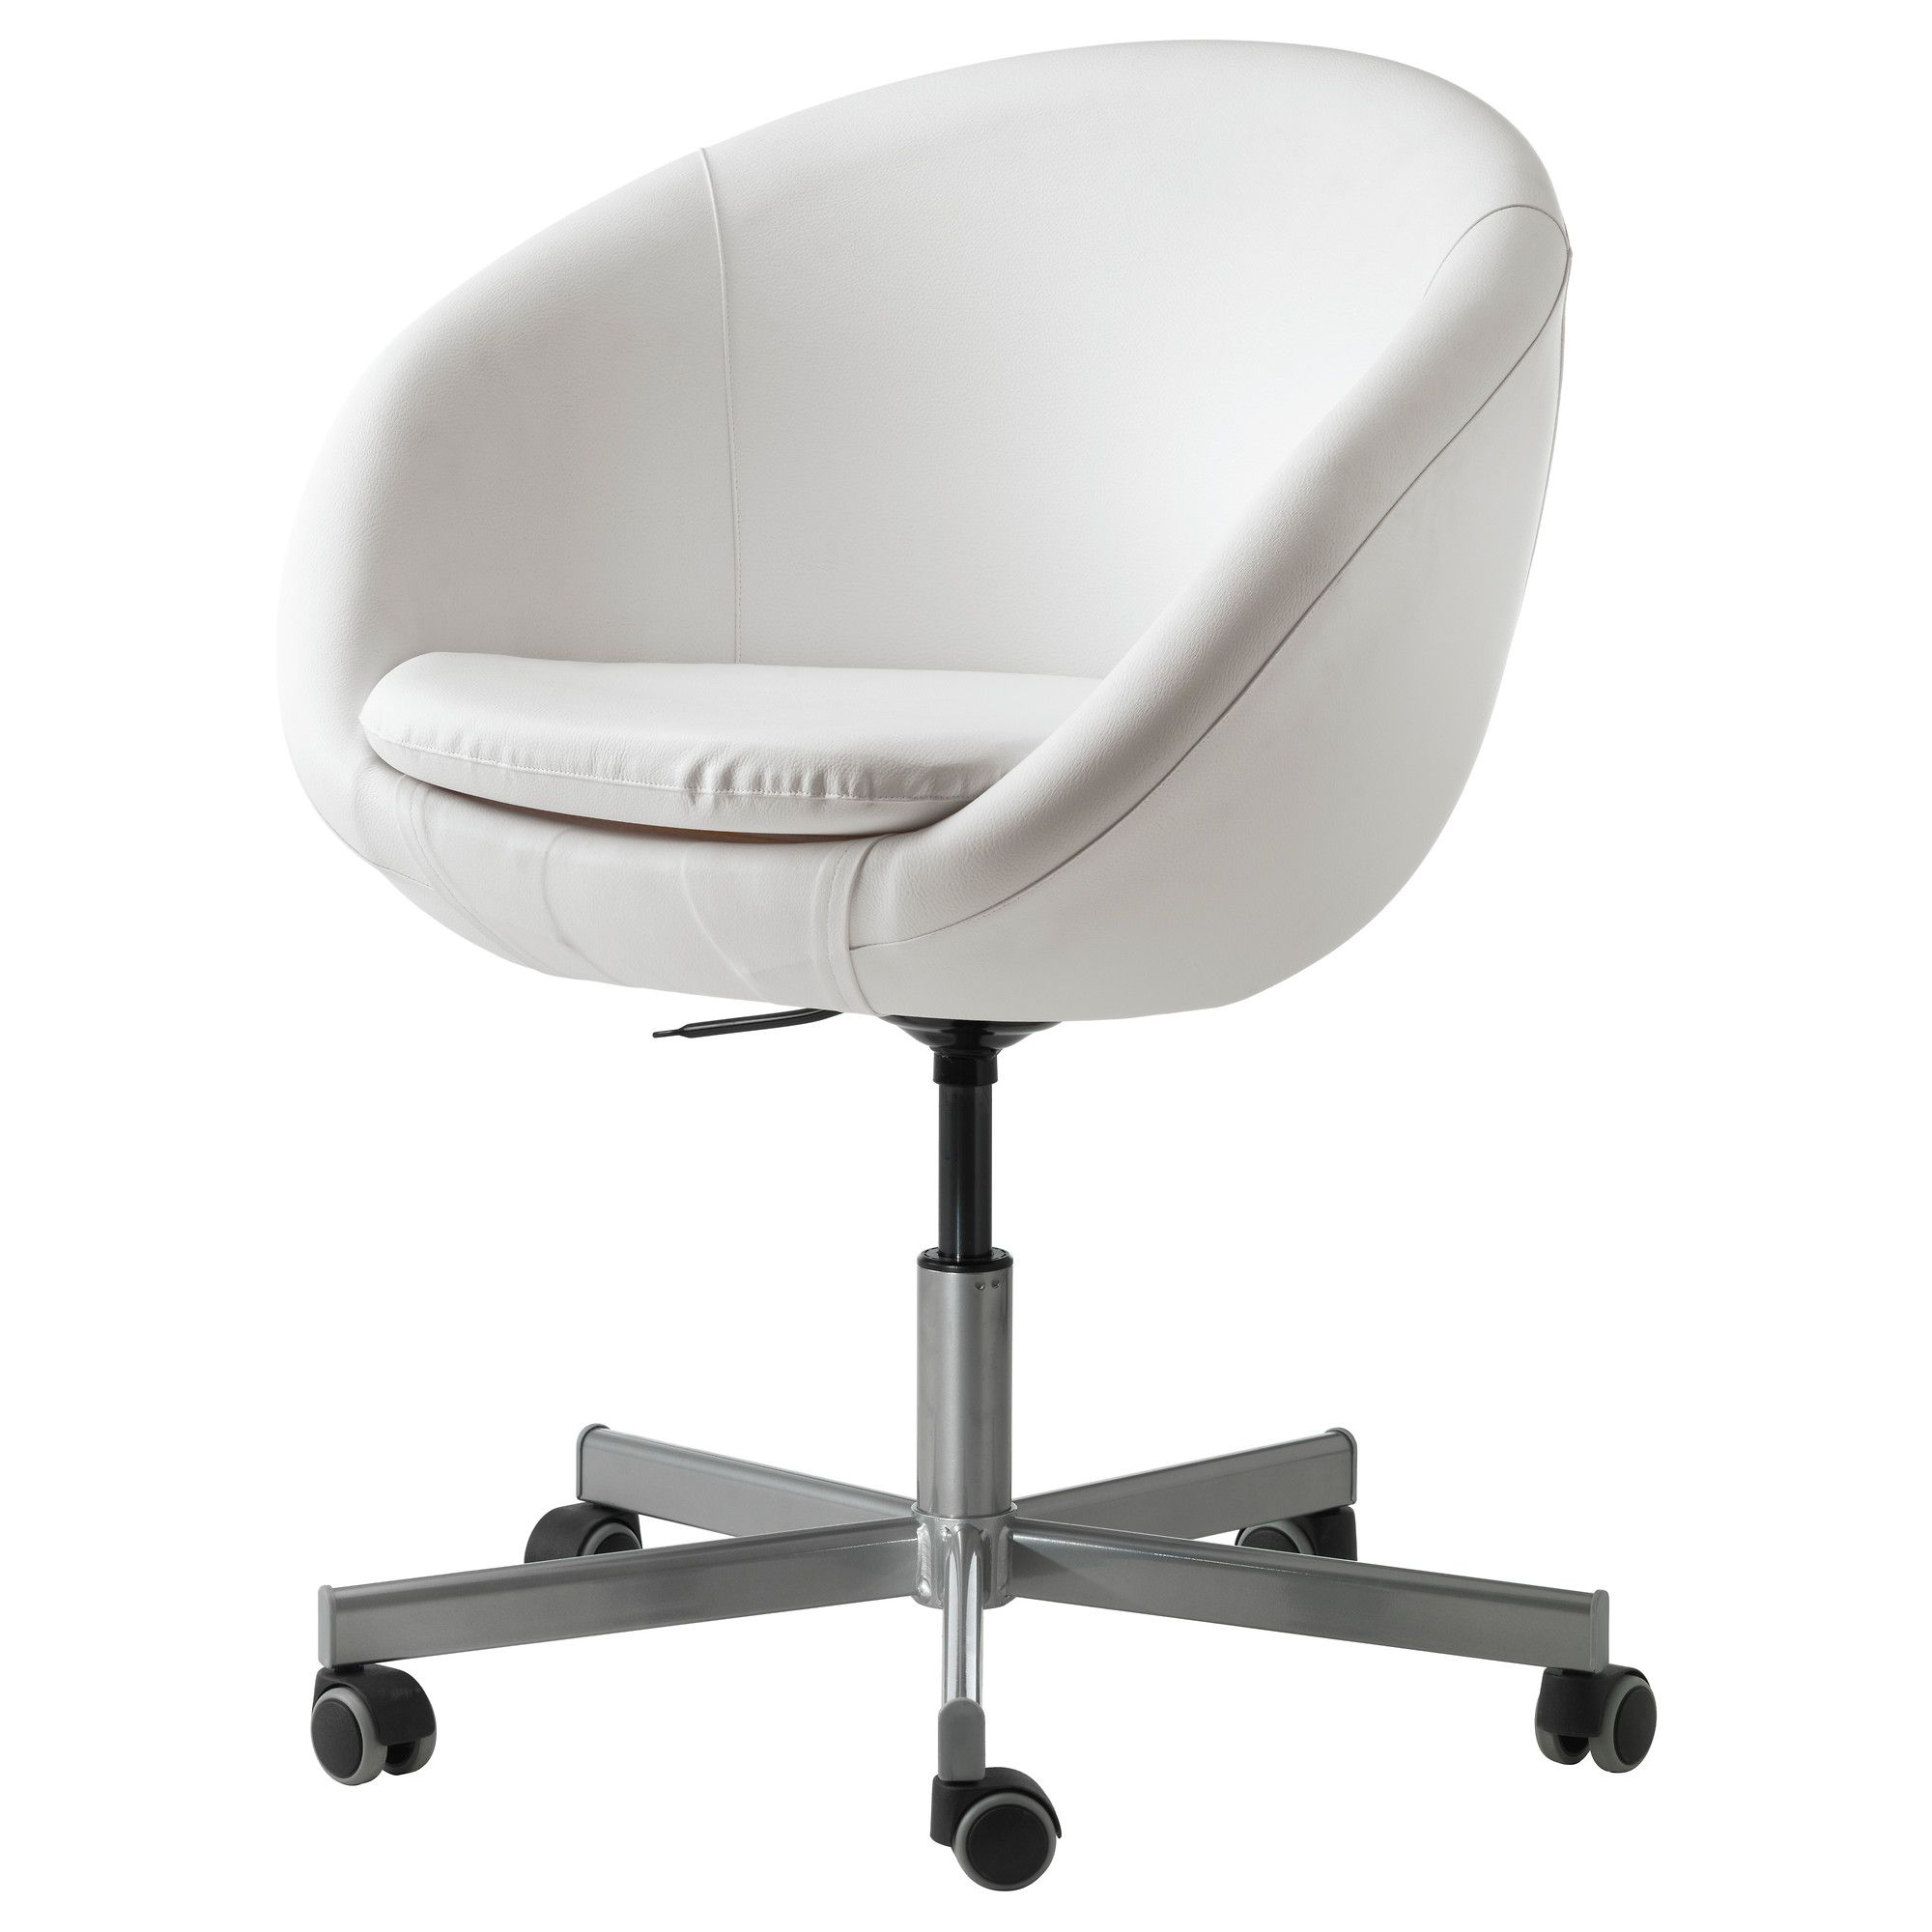 Grey Desk Chair Skruvsta Swivel Chair Idhult White Ikea The Perfectly Cute